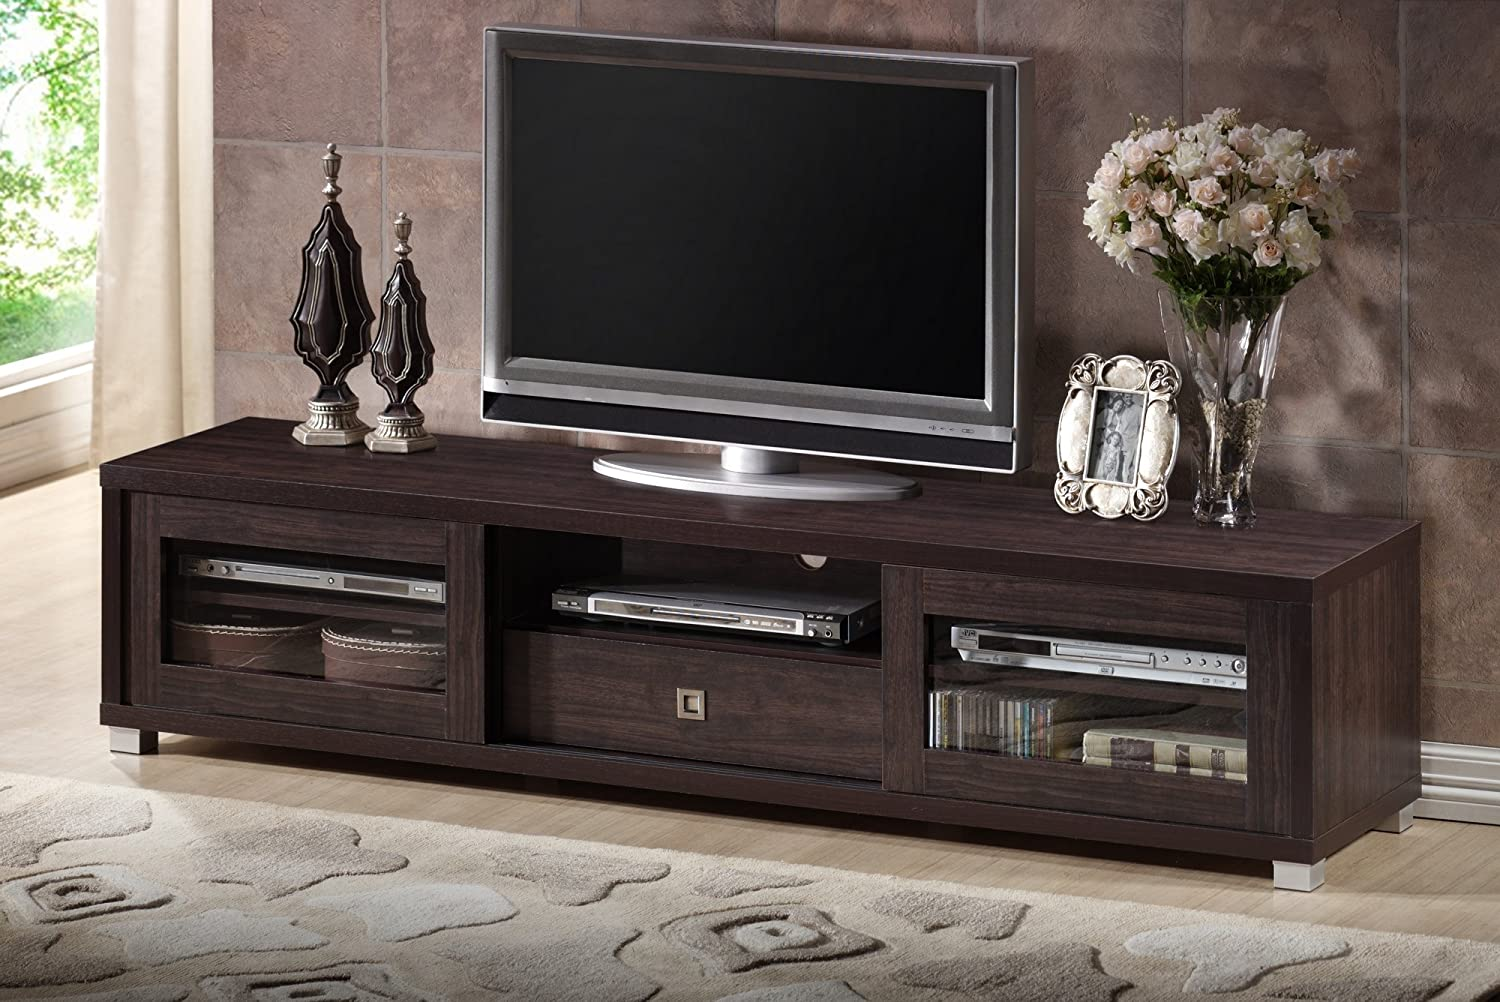 Amazon.com Wholesale Interiors Baxton Studio Beasley TV Cabinet with 2 Sliding Doors and Drawer 70\  Dark Brown Kitchen \u0026 Dining & Amazon.com: Wholesale Interiors Baxton Studio Beasley TV Cabinet ...